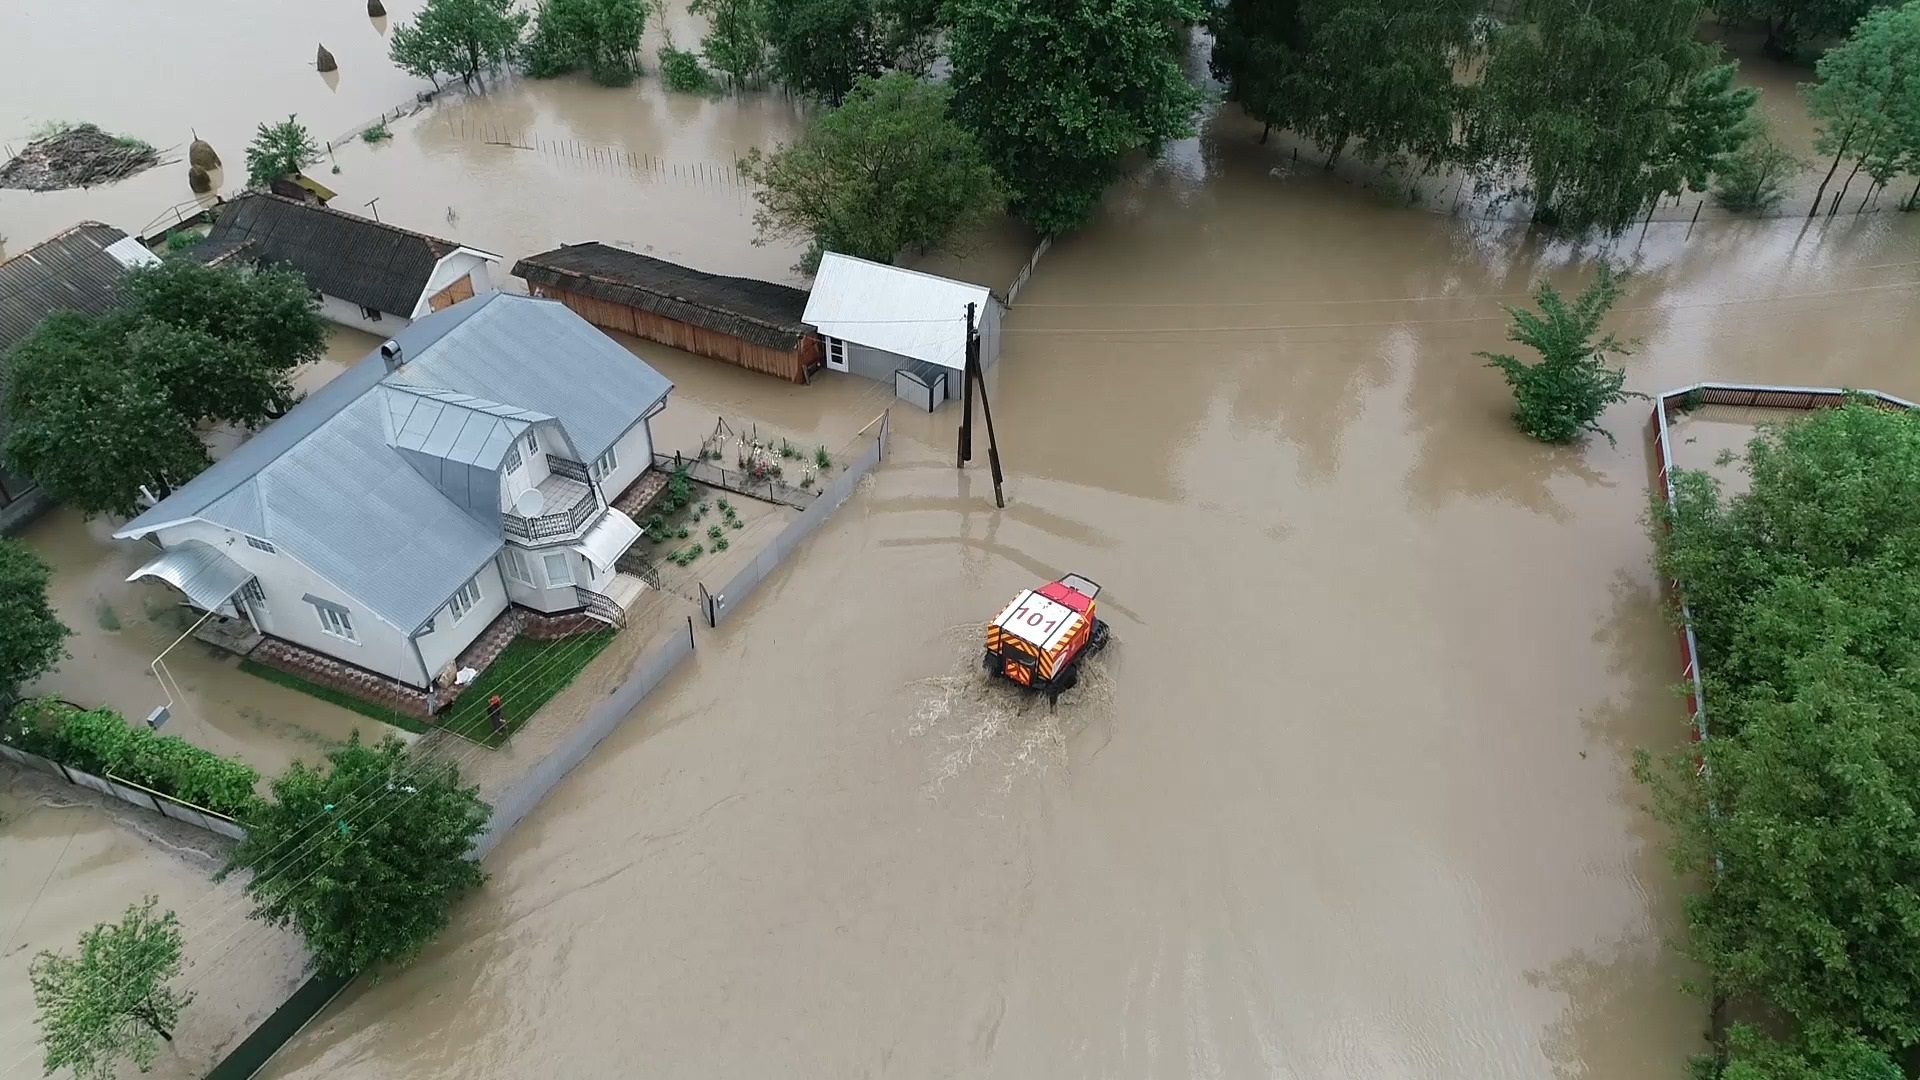 Flood response services on site in western Ukraine. Source: National State Emergency Service of Ukraine